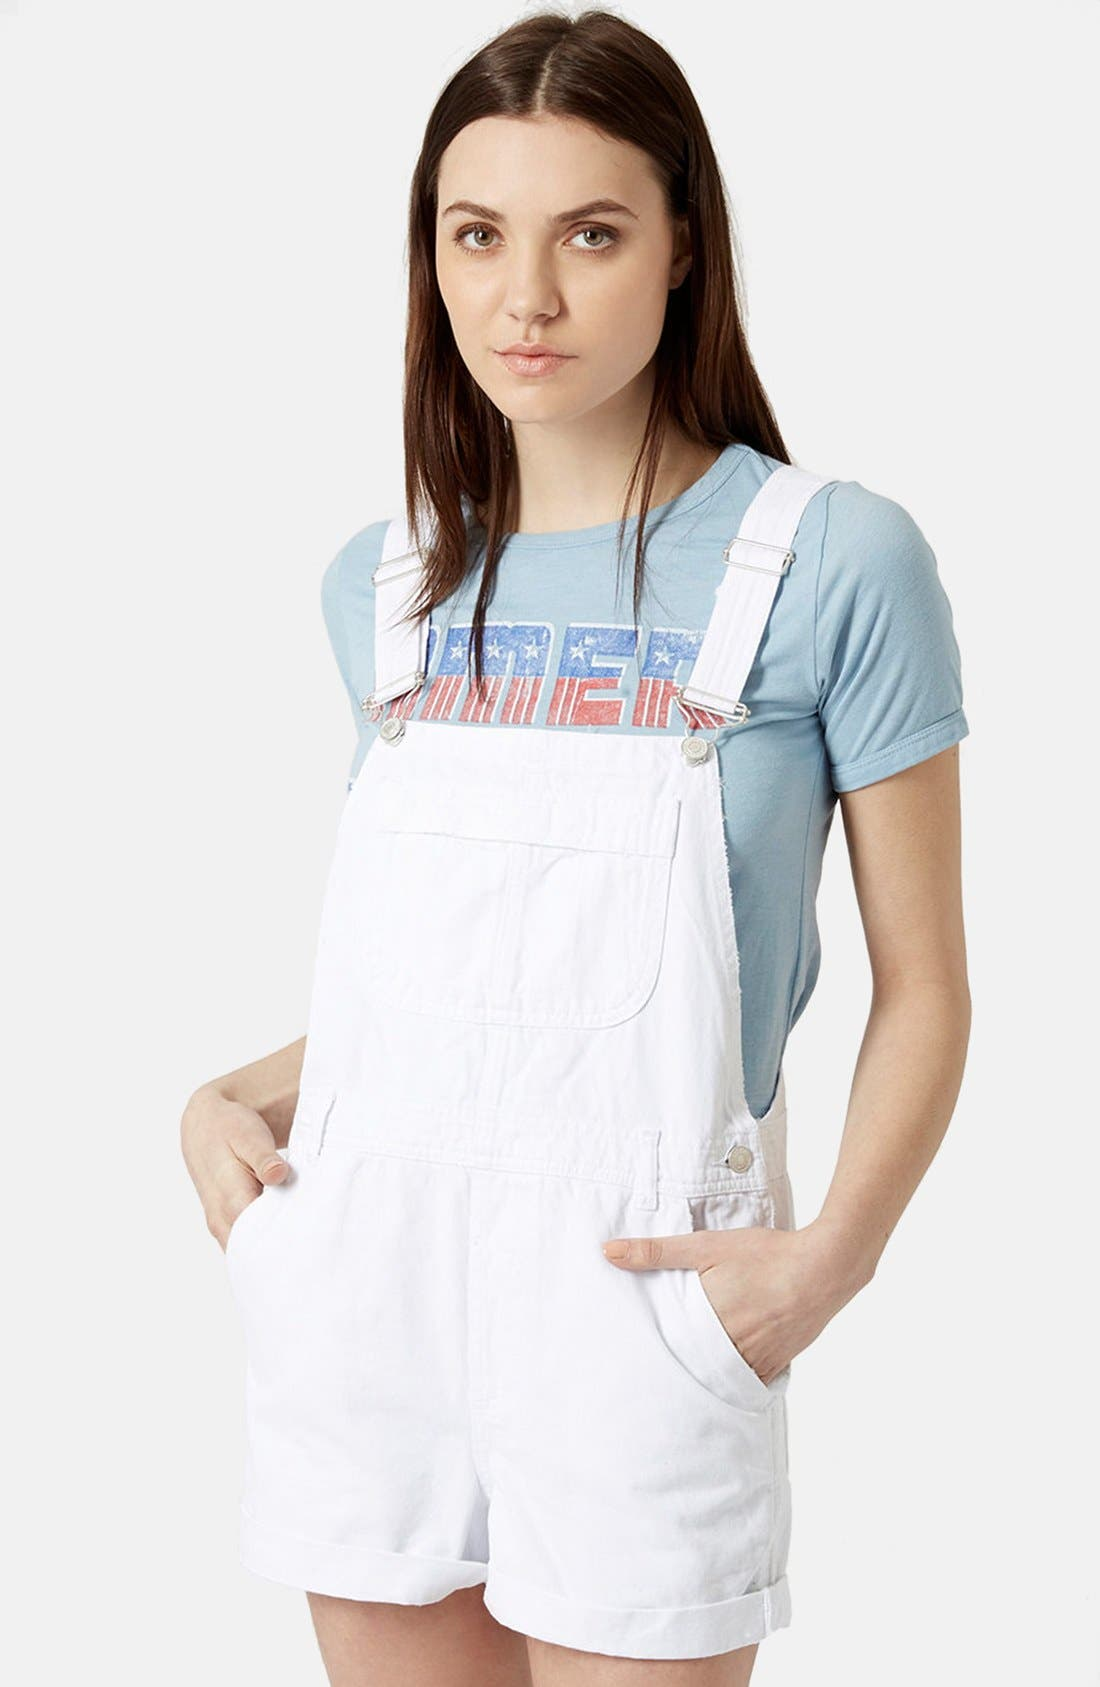 Alternate Image 1 Selected - Topshop Moto Dungaree Short Overalls (White)